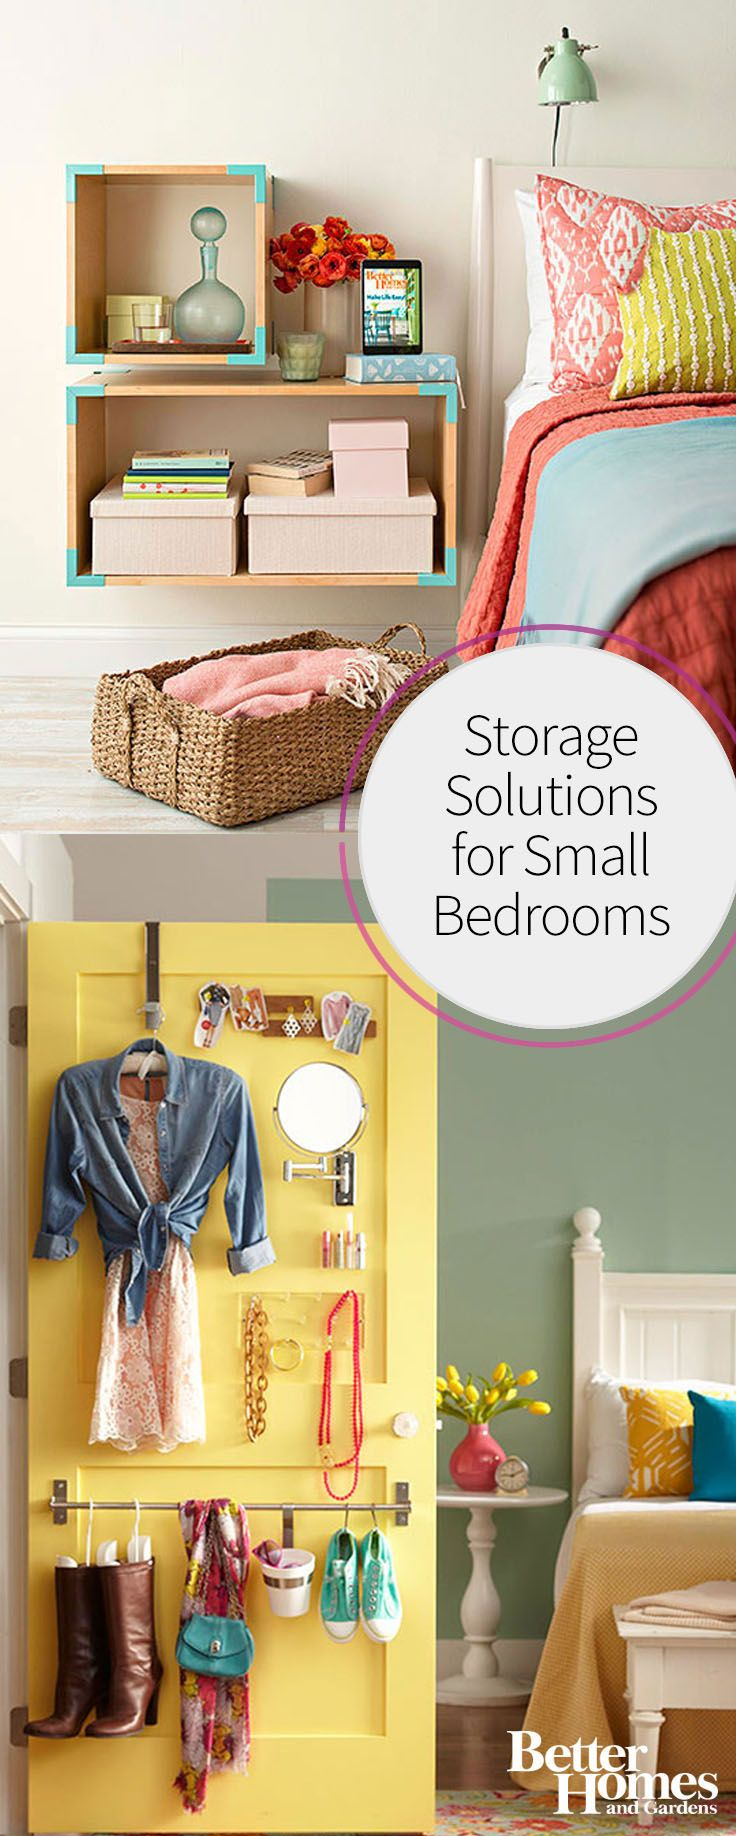 Best 25 small bedroom storage ideas on pinterest - Pinterest storage ideas for small spaces ideas ...